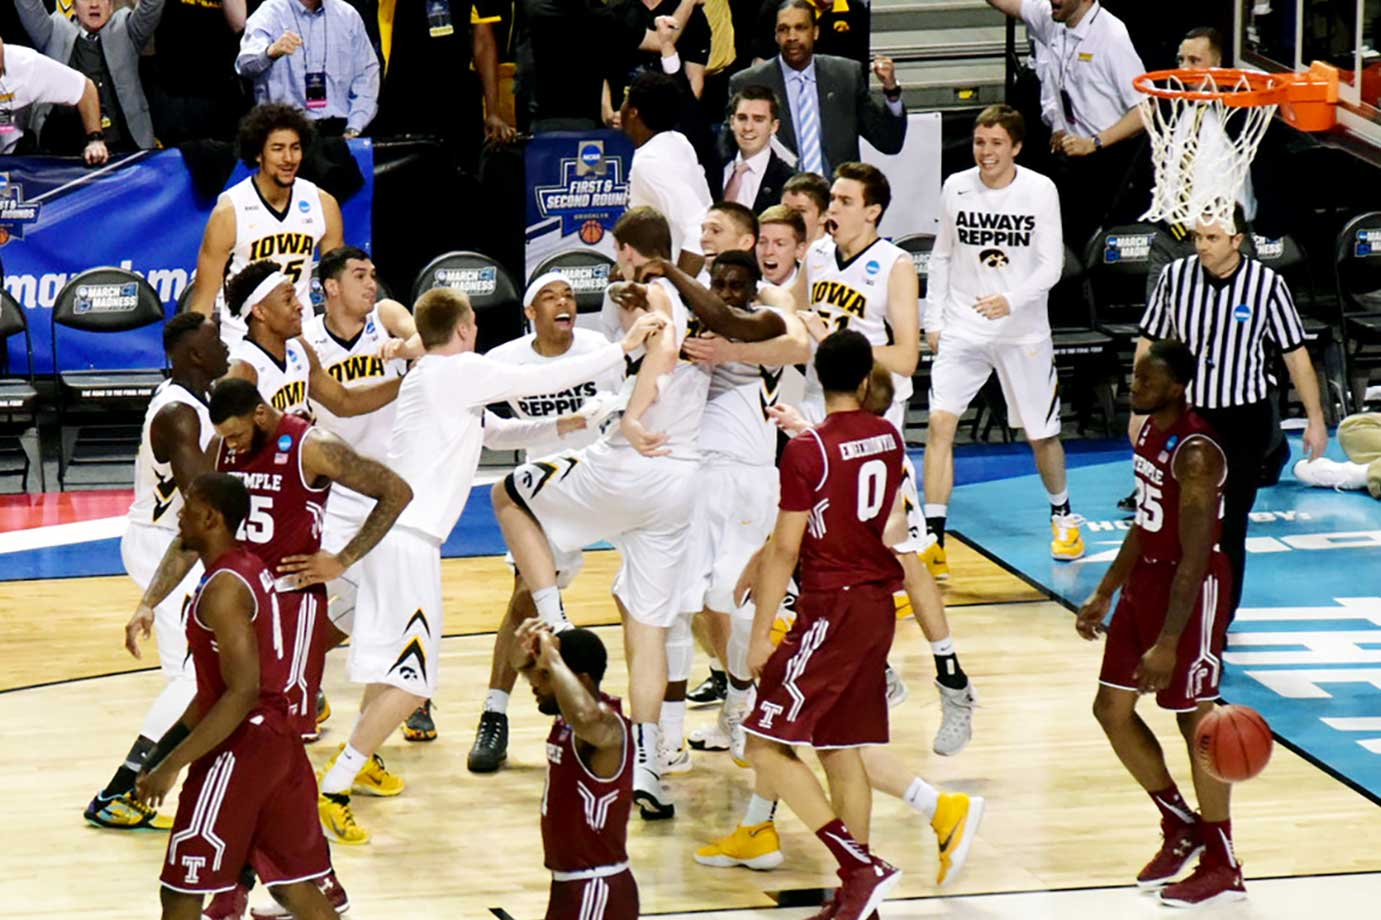 Iowa players storm the court to celebrate the last-second, game-winning basket against Temple in overtime.